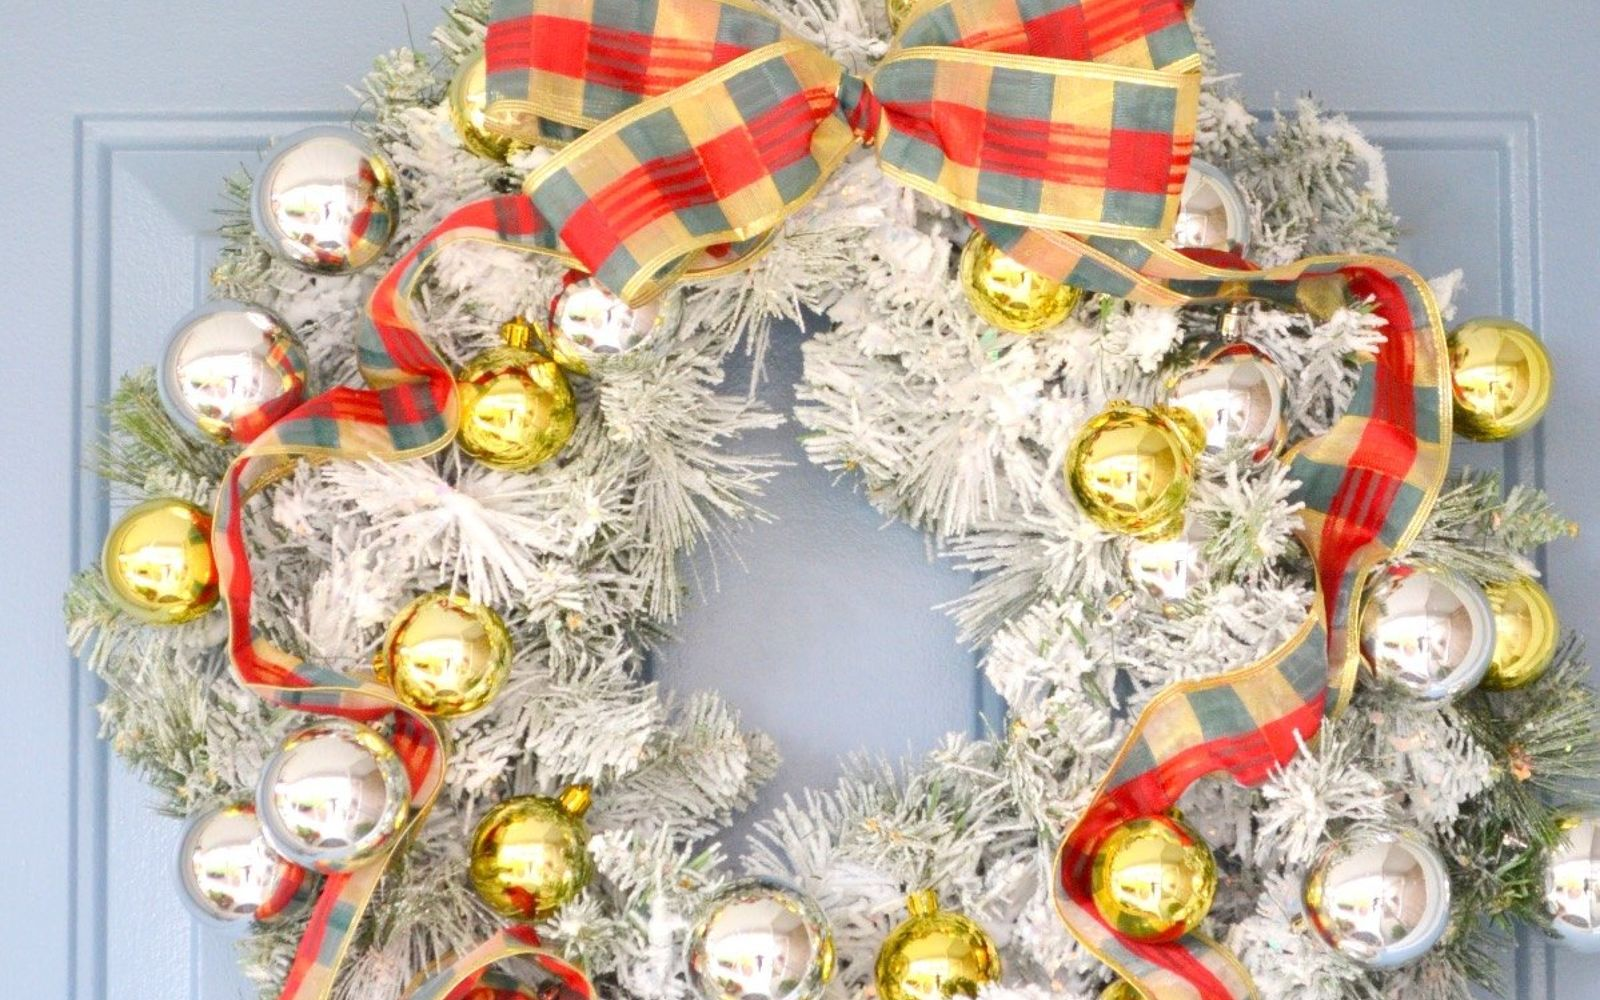 s 17 tricks to make a gorgeous wreath in half the time, Coat Your Wreath In Sno Flock